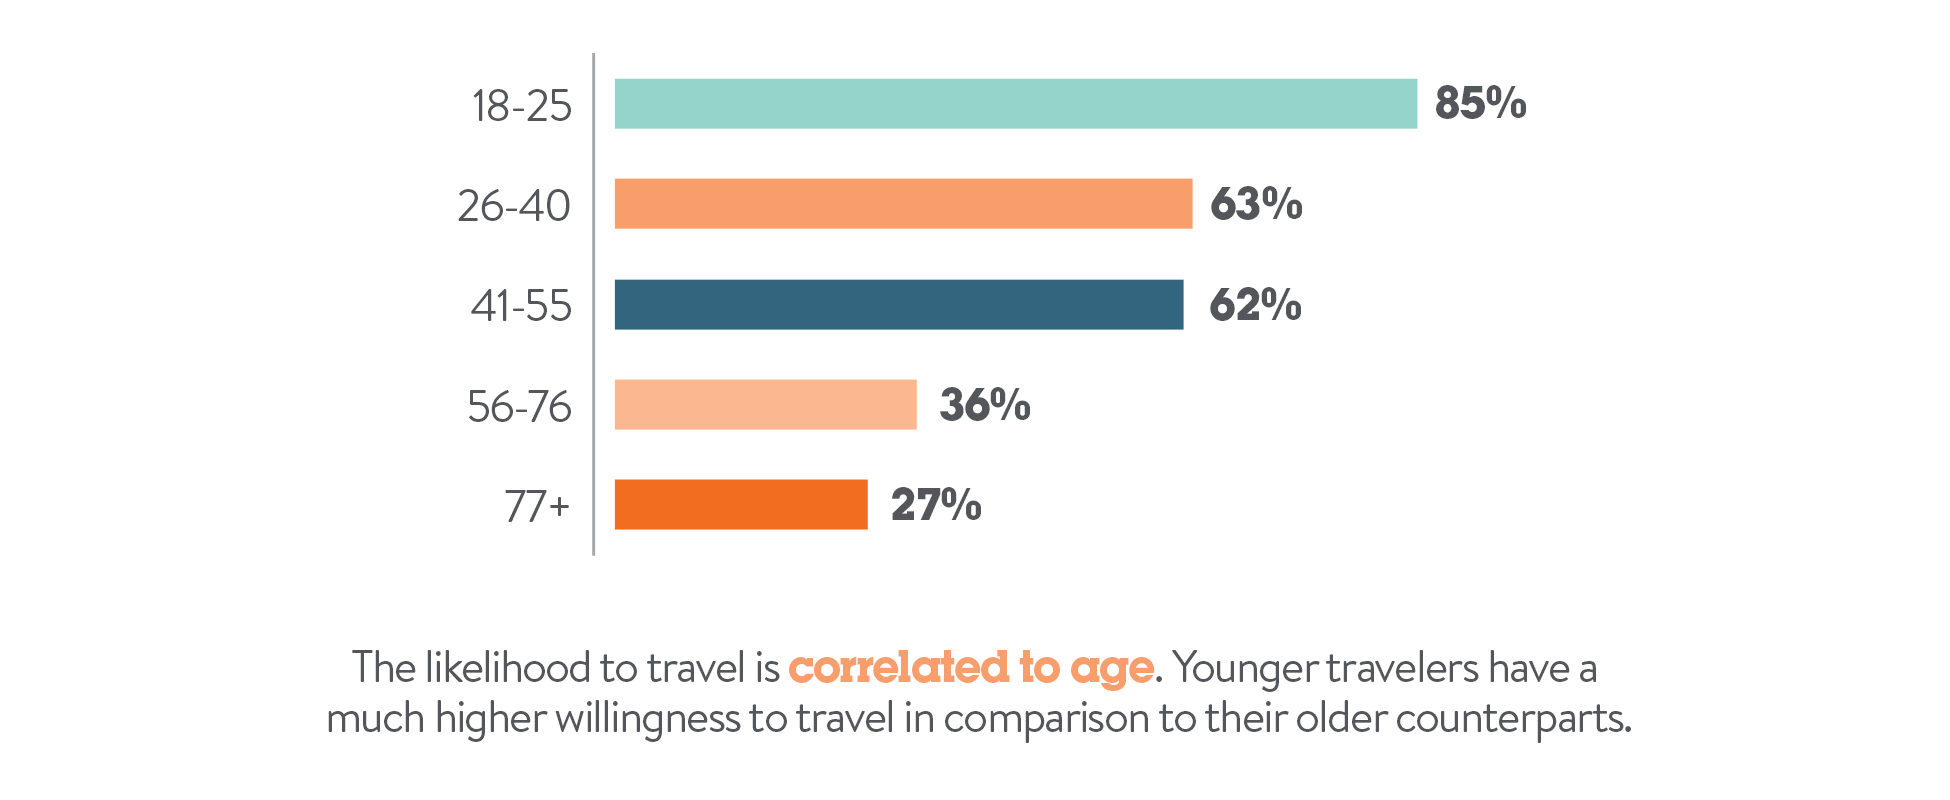 travel is correlated to age